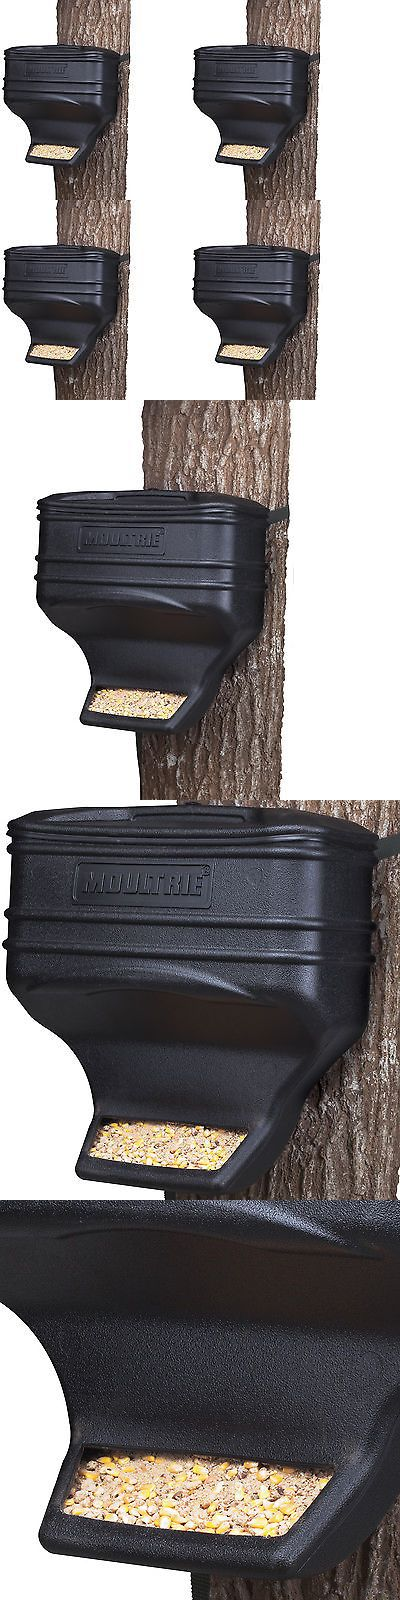 Game and Trail Cameras 52505: (4) Moultrie Feed Station Food Dispensing Gravity Deer Feeder Kits | Mfg-13104 -> BUY IT NOW ONLY: $94.99 on eBay!